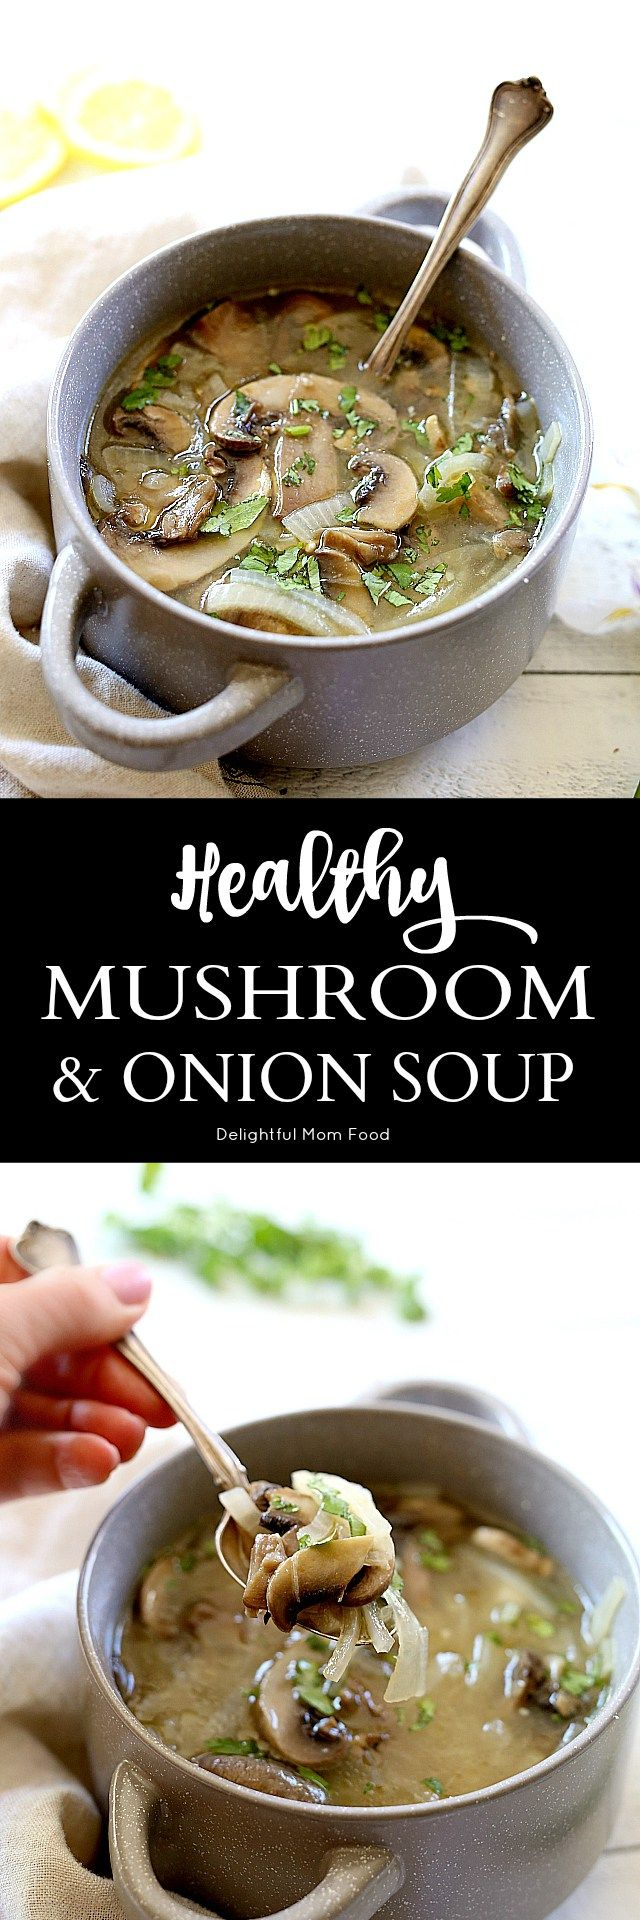 Easy sauteed mushroom onion soup made in one pot! Similar to Japanese onion soup with a few less ingredients. Double the recipe and save the leftovers as a slow cooker chicken marinade!